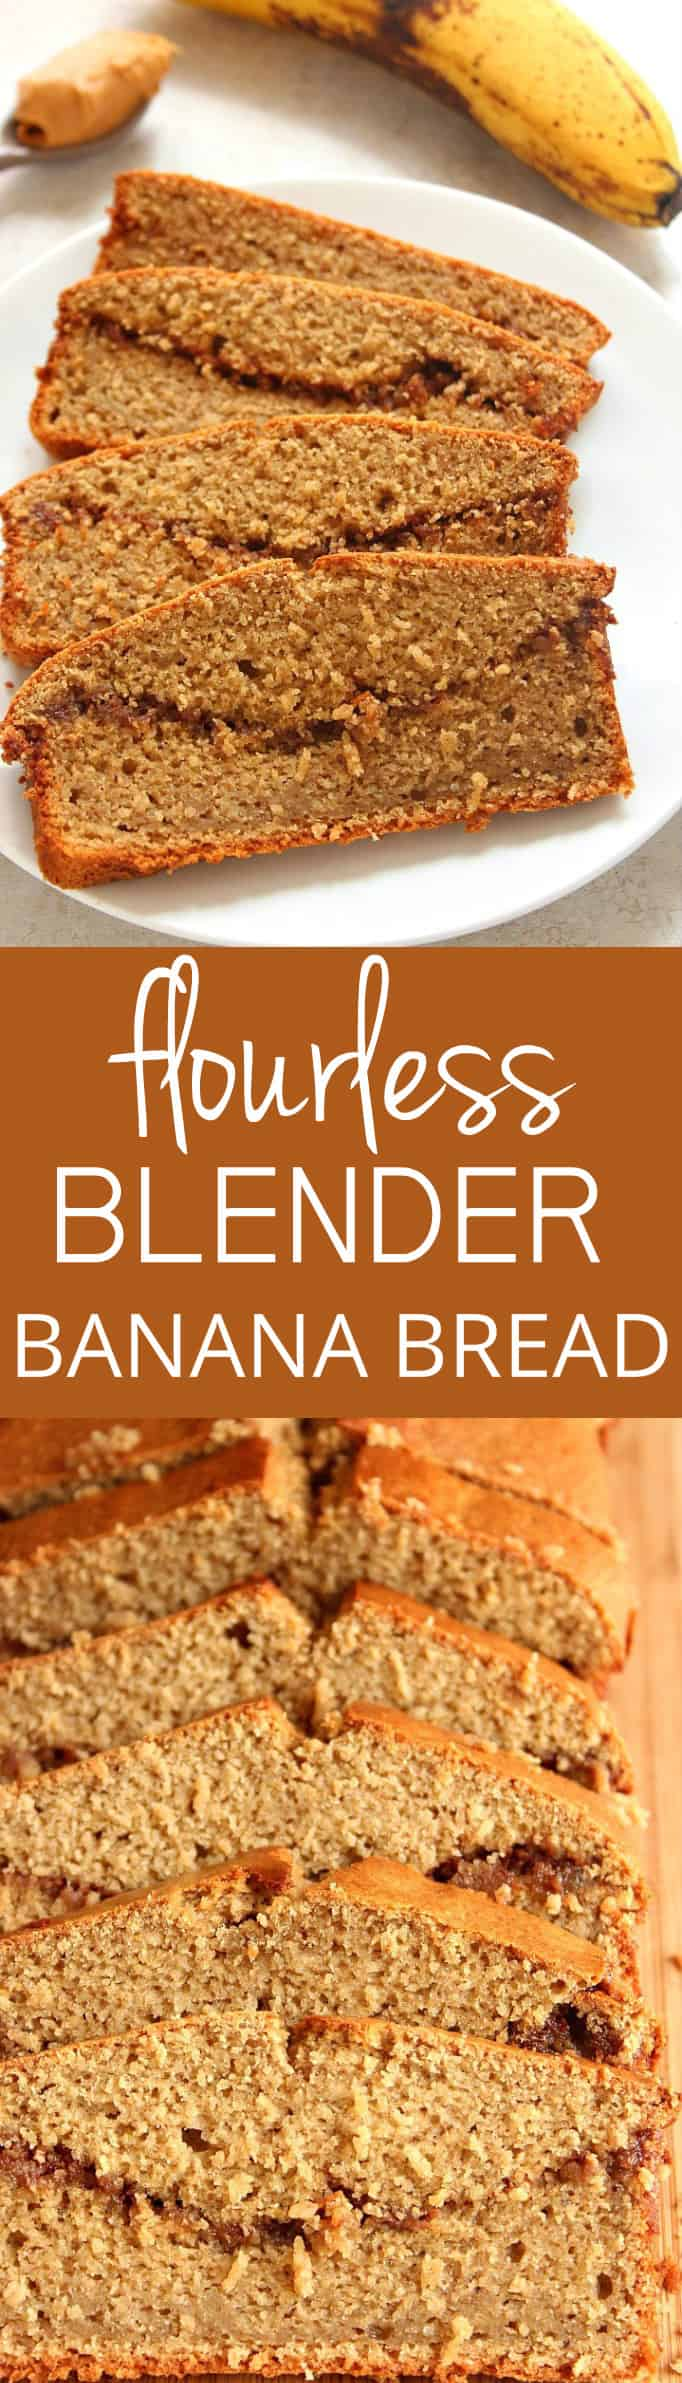 blender bread longA Peanut Butter Banana Blender Bread Recipe